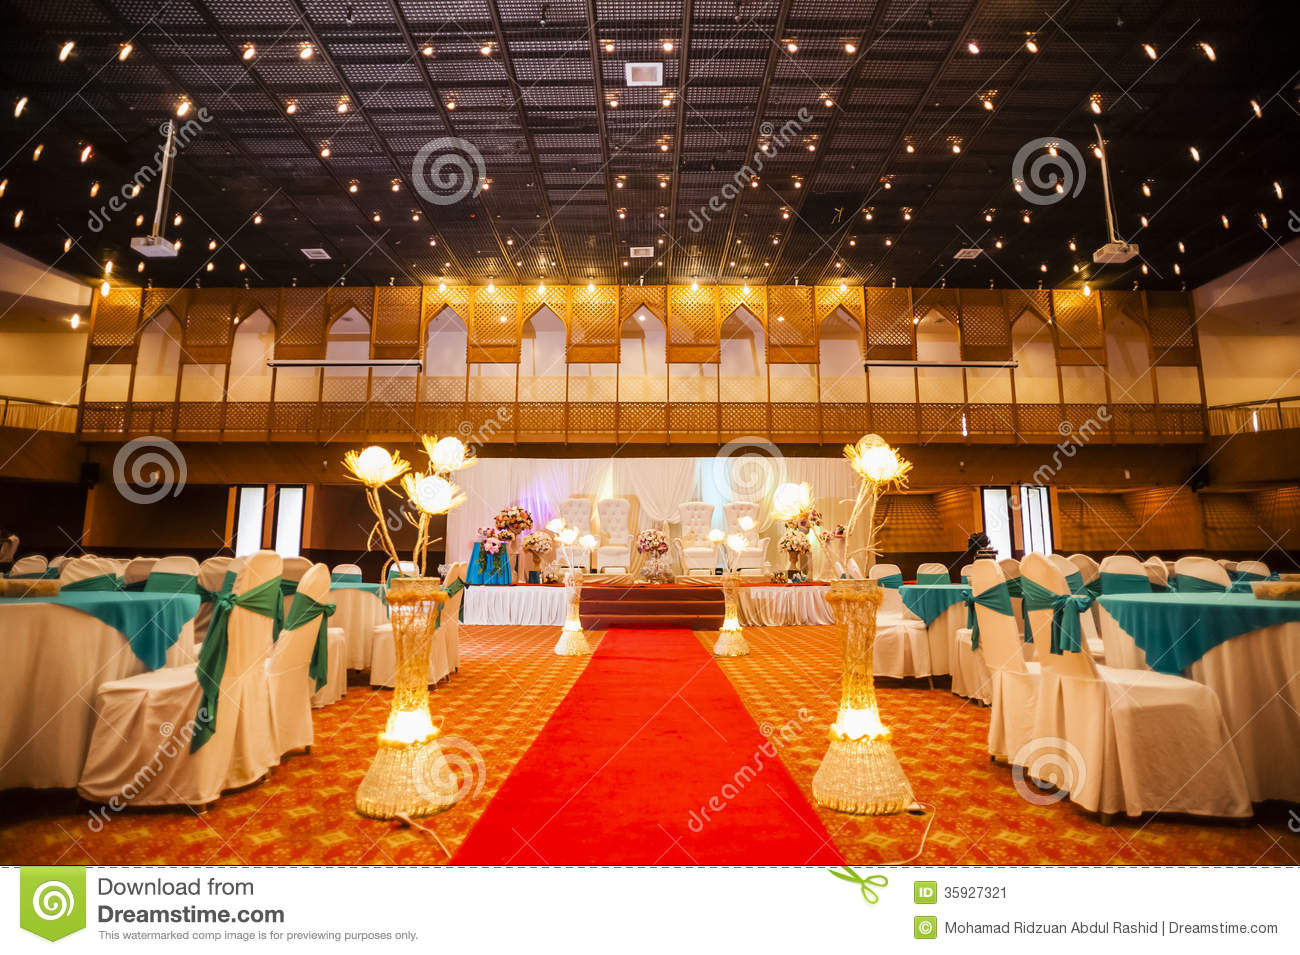 Wedding hall decoration stock image image of party for Wedding hall decoration items